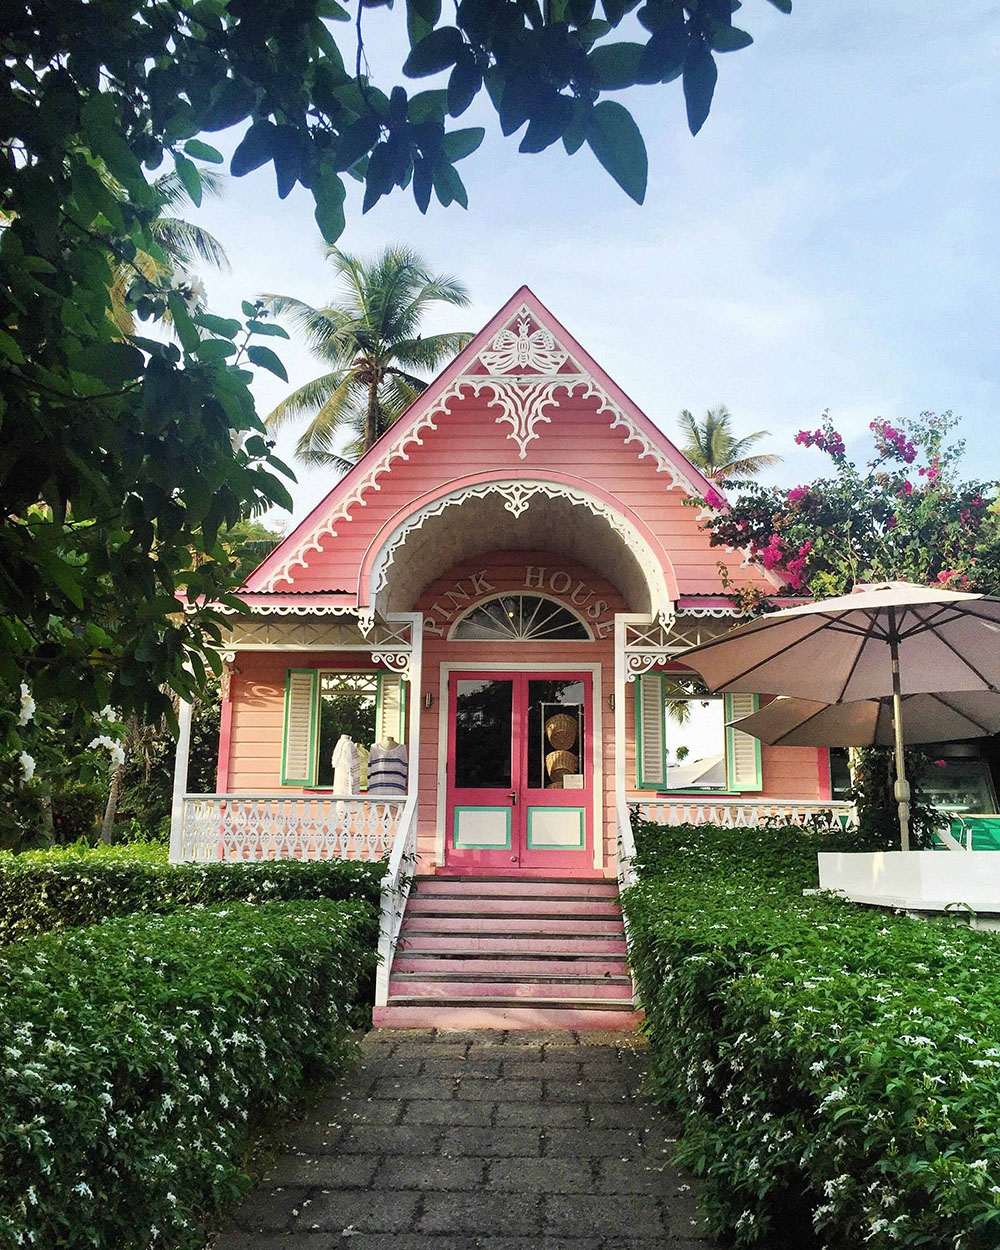 Pink House Boutique surrounded by hedges and dense gardens